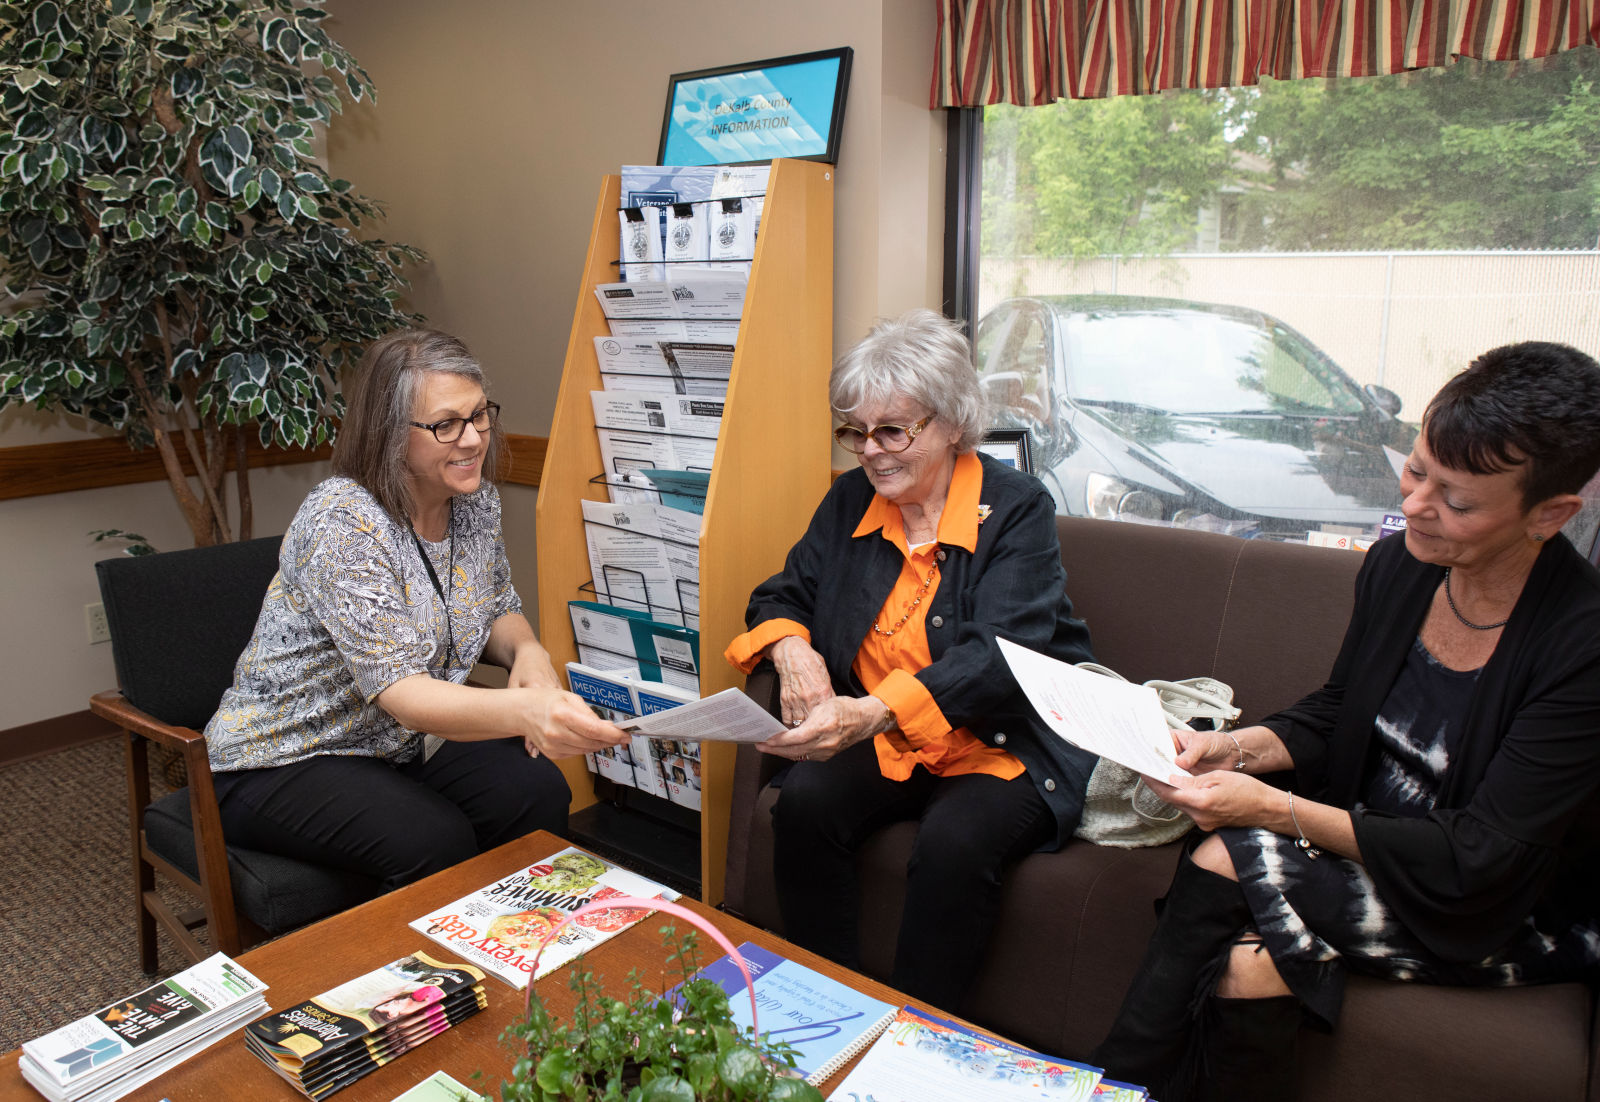 Elder Care Services Employees provide information to an older woman